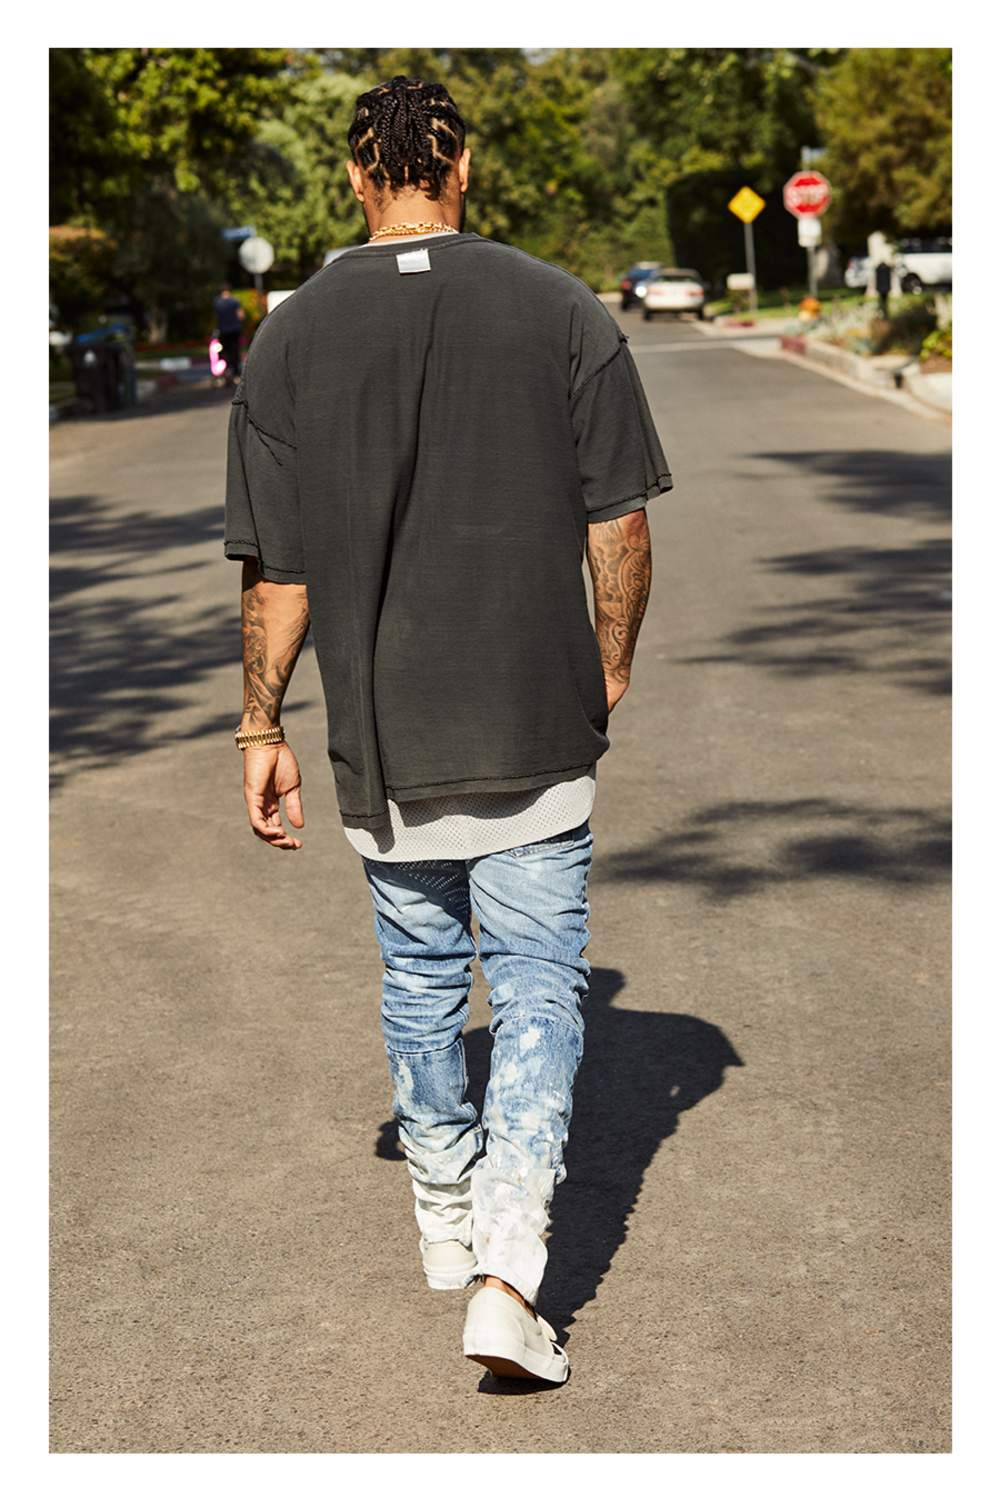 94ec88c3d29 Fear Of God: Luxury Streetwear For The A-List | New To Us | The ...